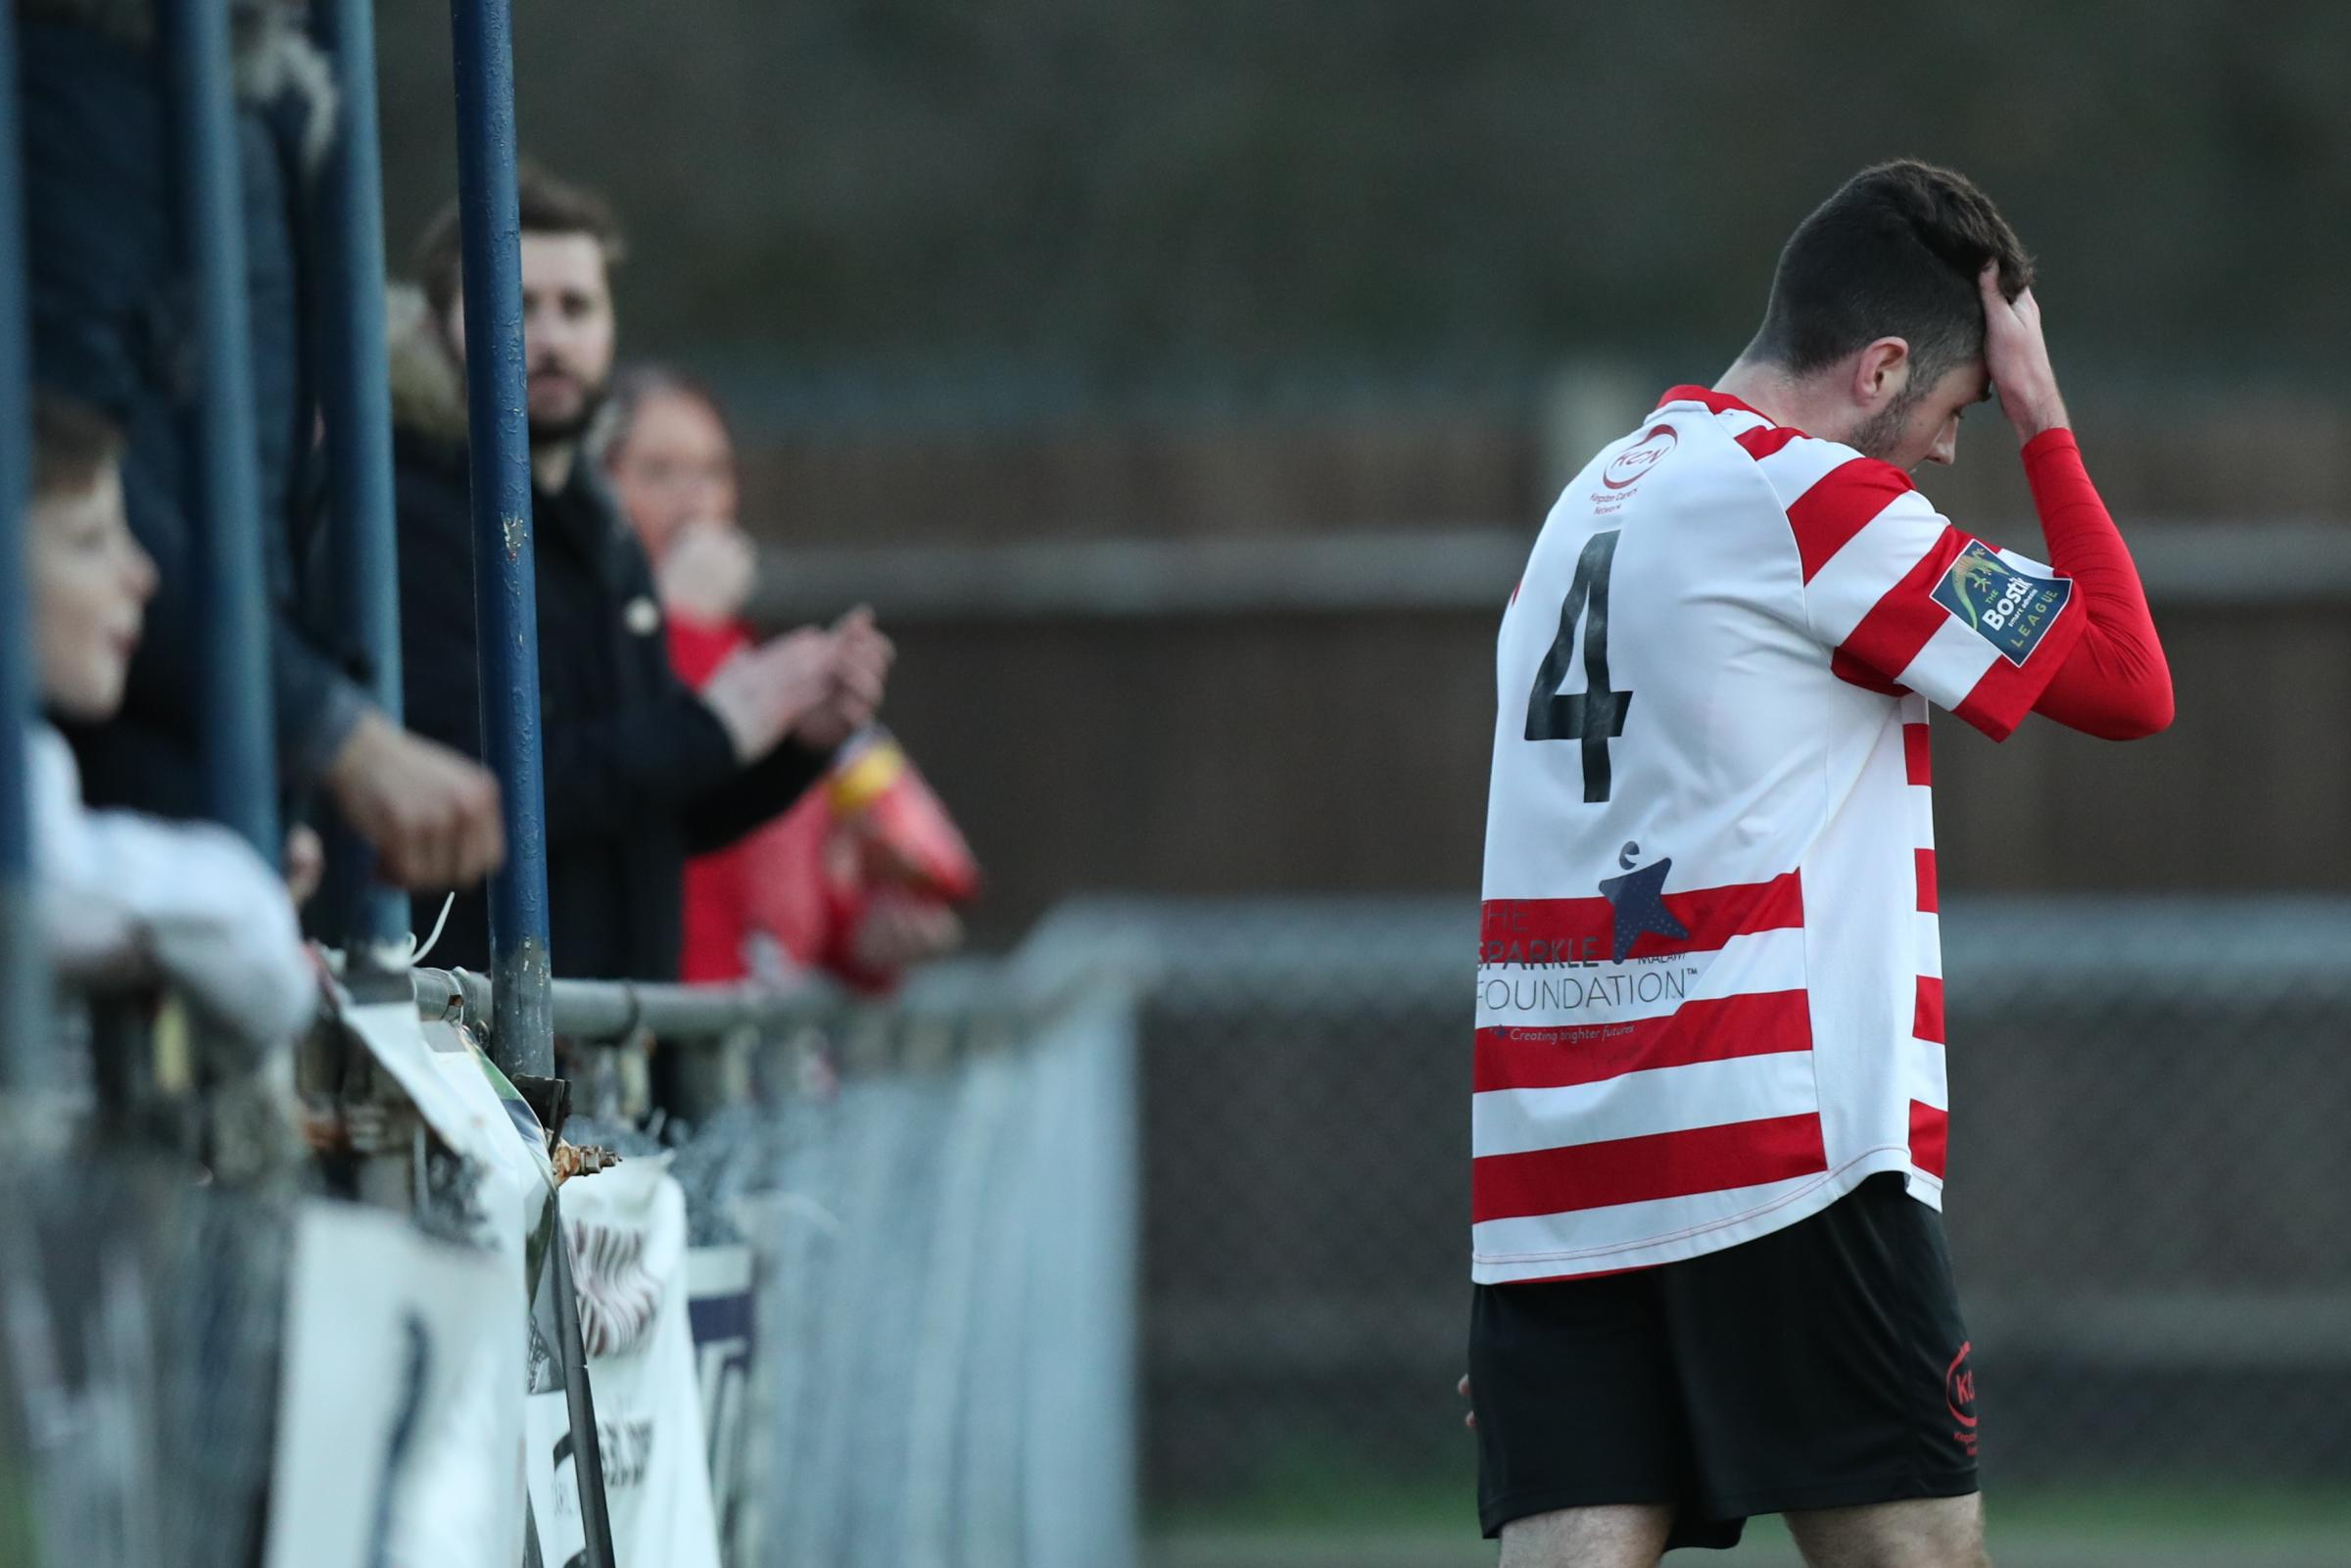 Ben Dempsey shows his disappointment after missing the best chance of the game. Pic: Simon Roe